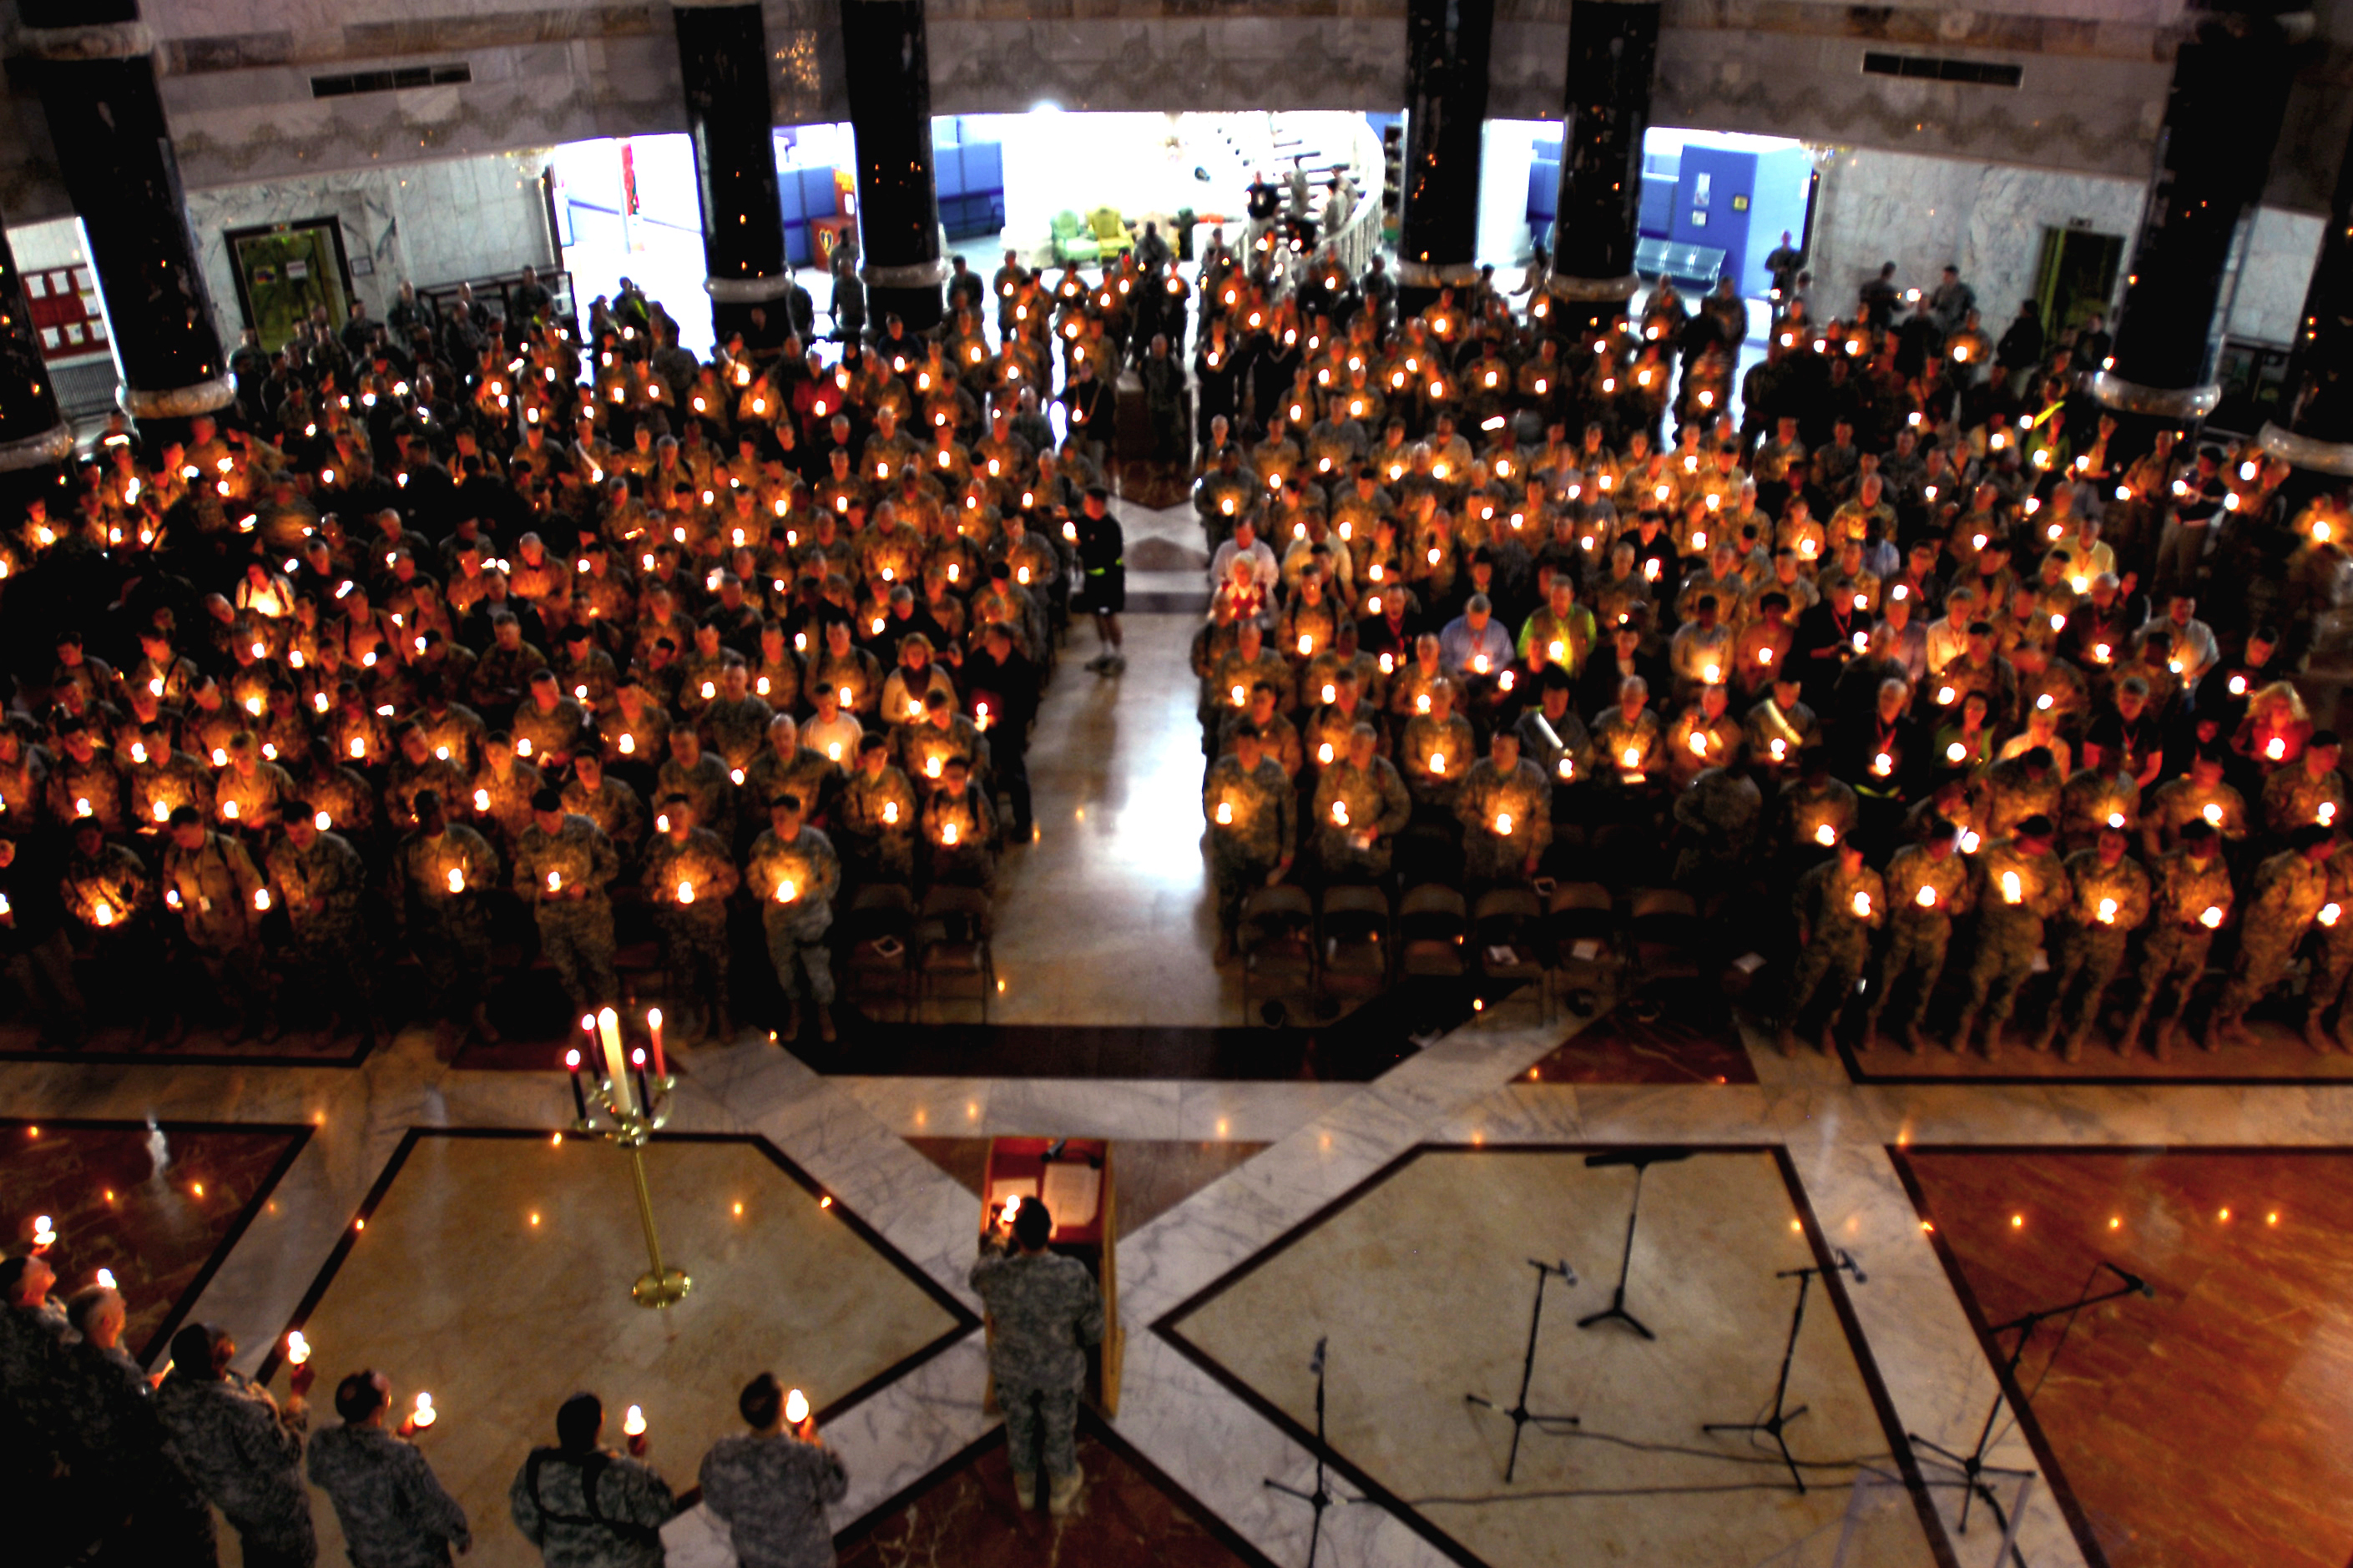 File:Flickr - The U.S. Army - Christmas Eve Candlelight Services.jpg